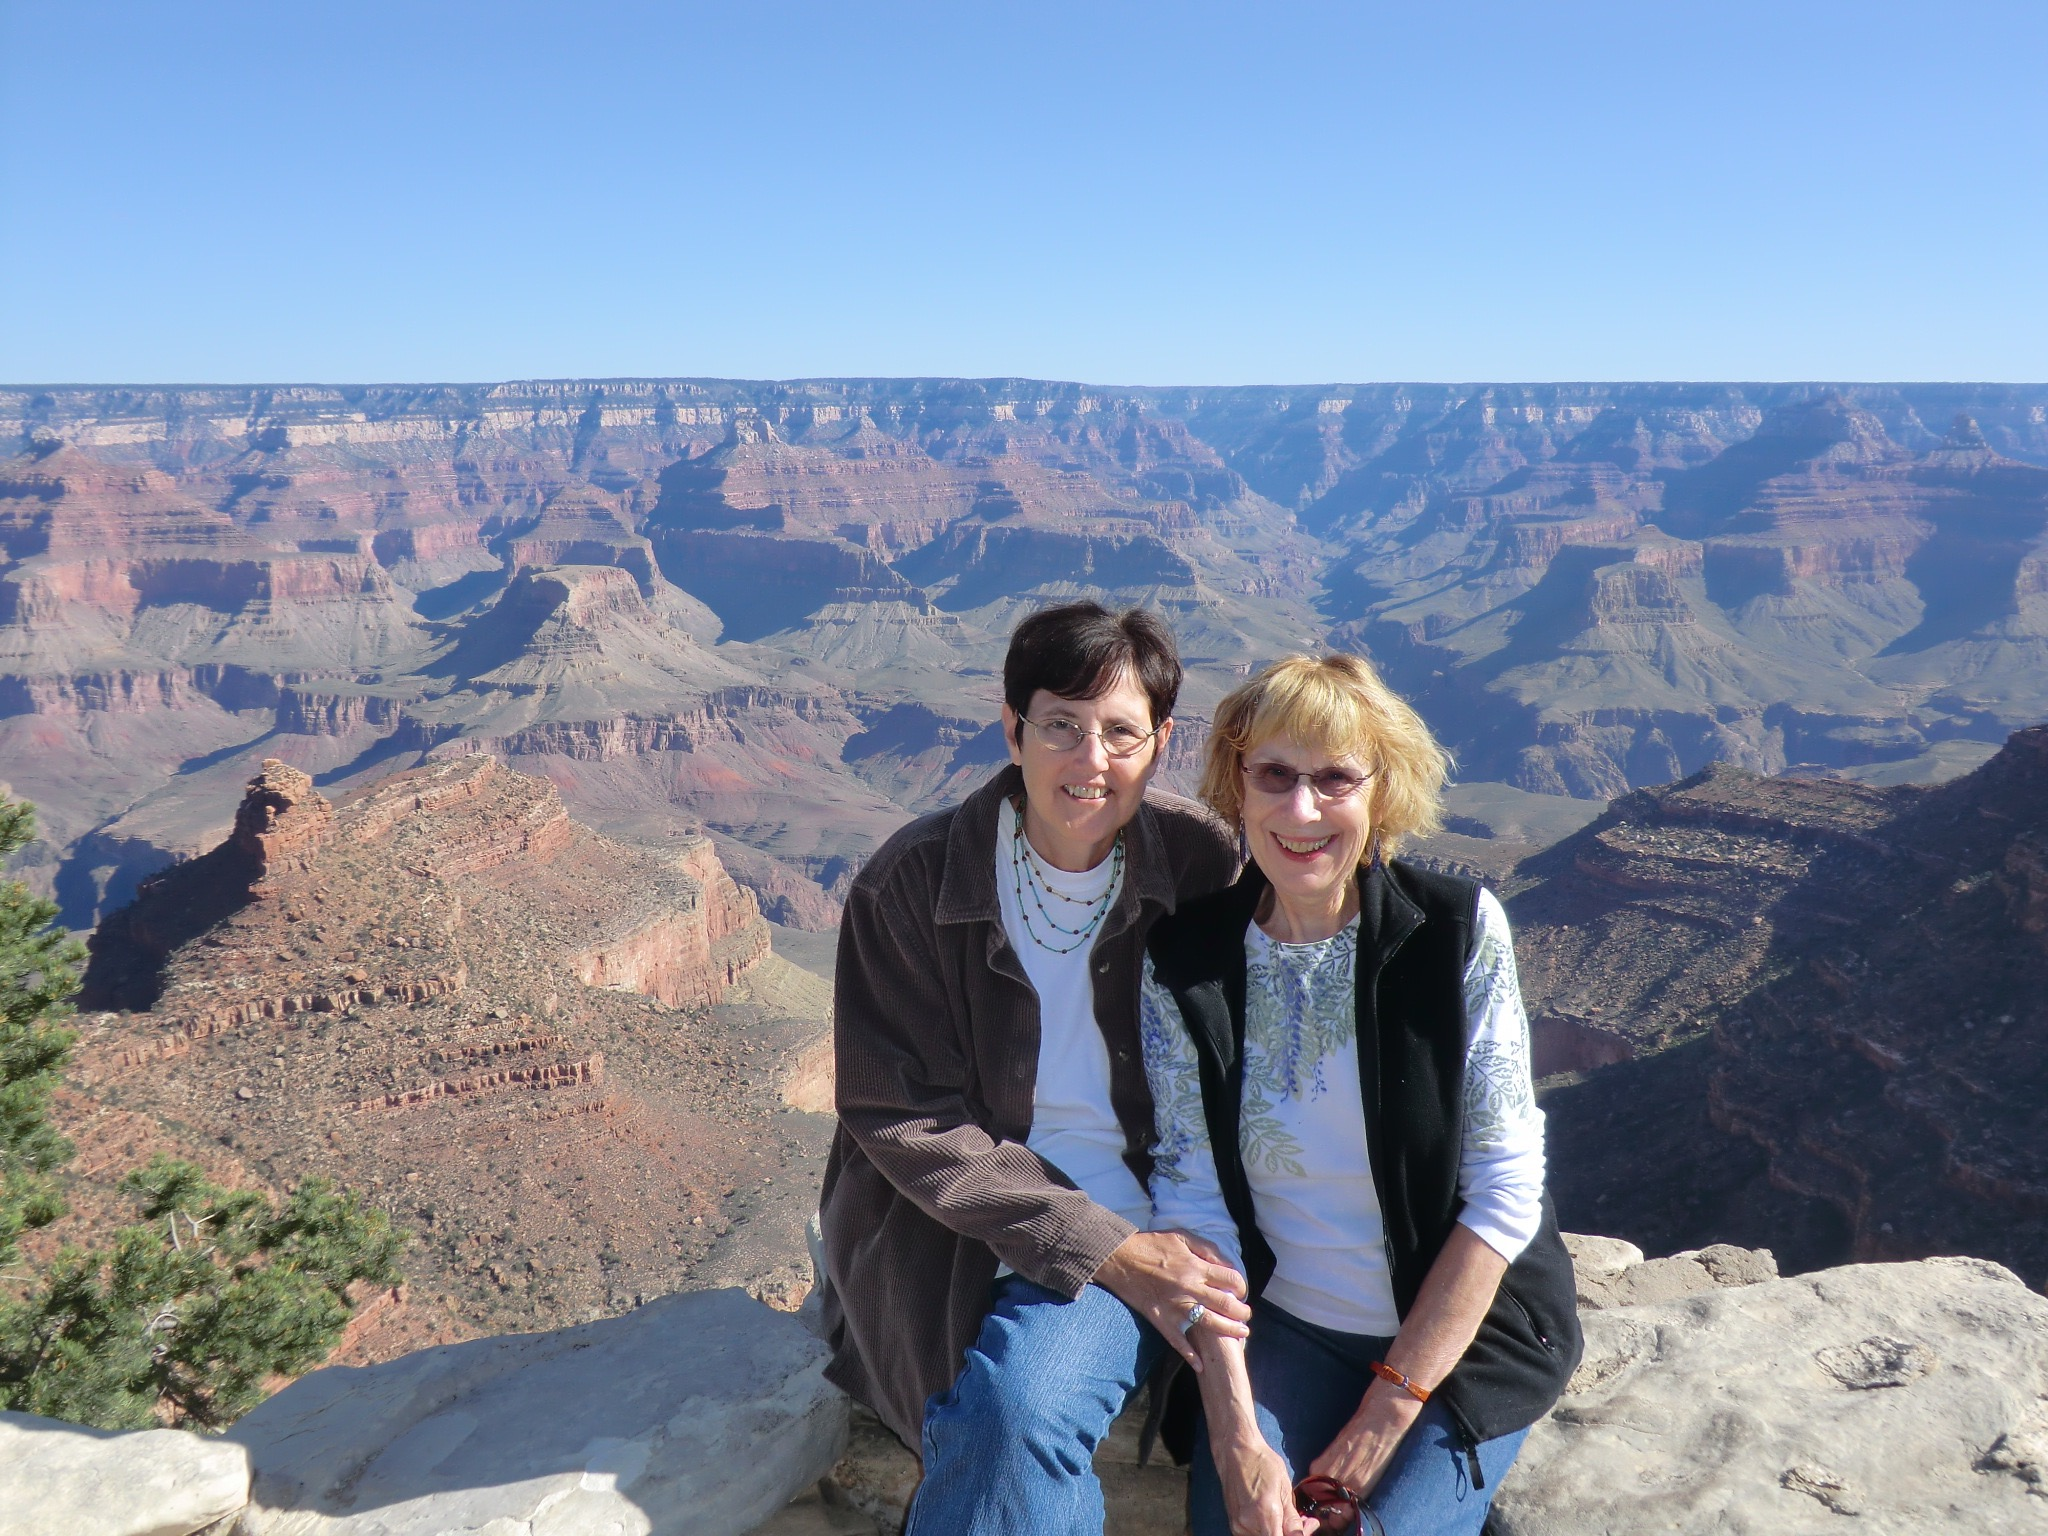 Maggie and Anna French at the Grand Canyon